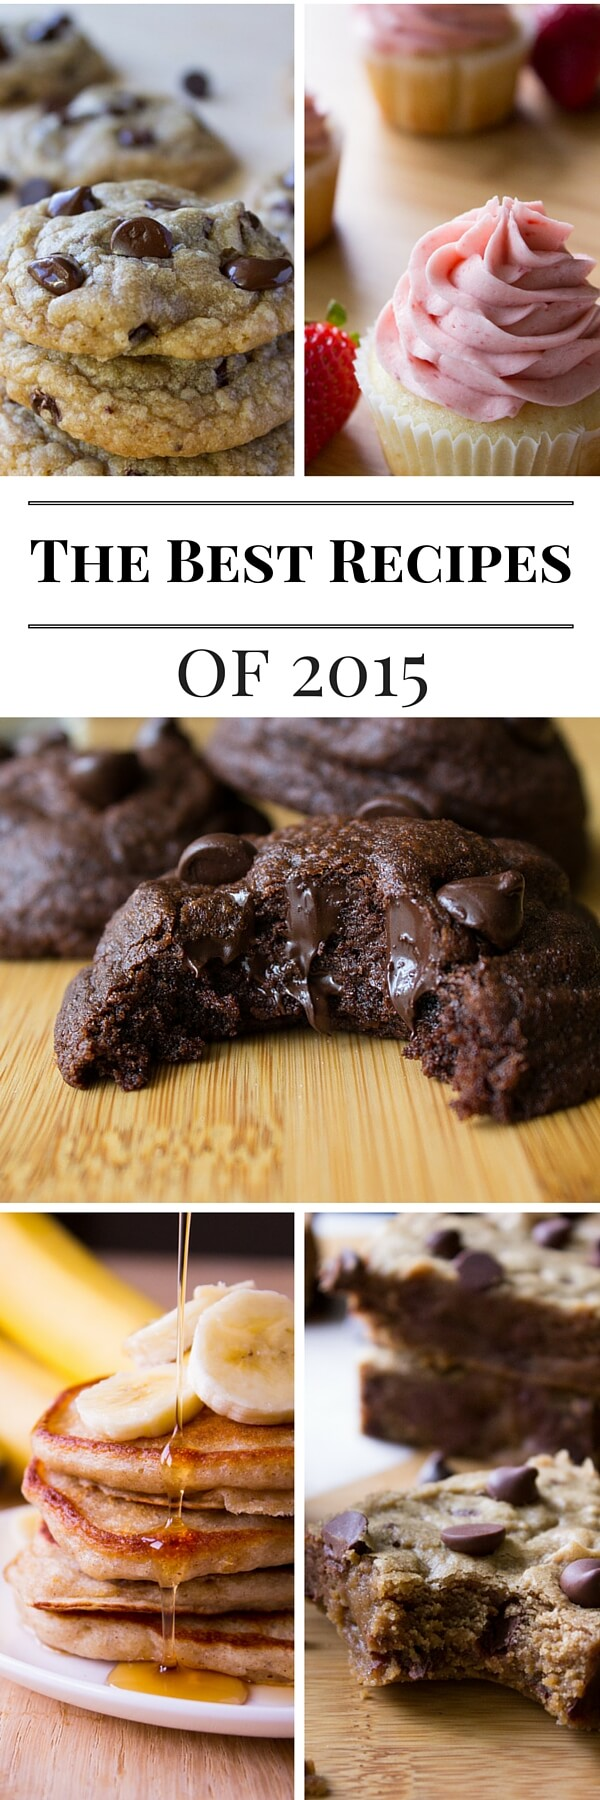 Cookies, Bars, Breakfasts.... And of Course Lots of Chocolate. Check out the top 10 recipes from Just So Tasty in 2015